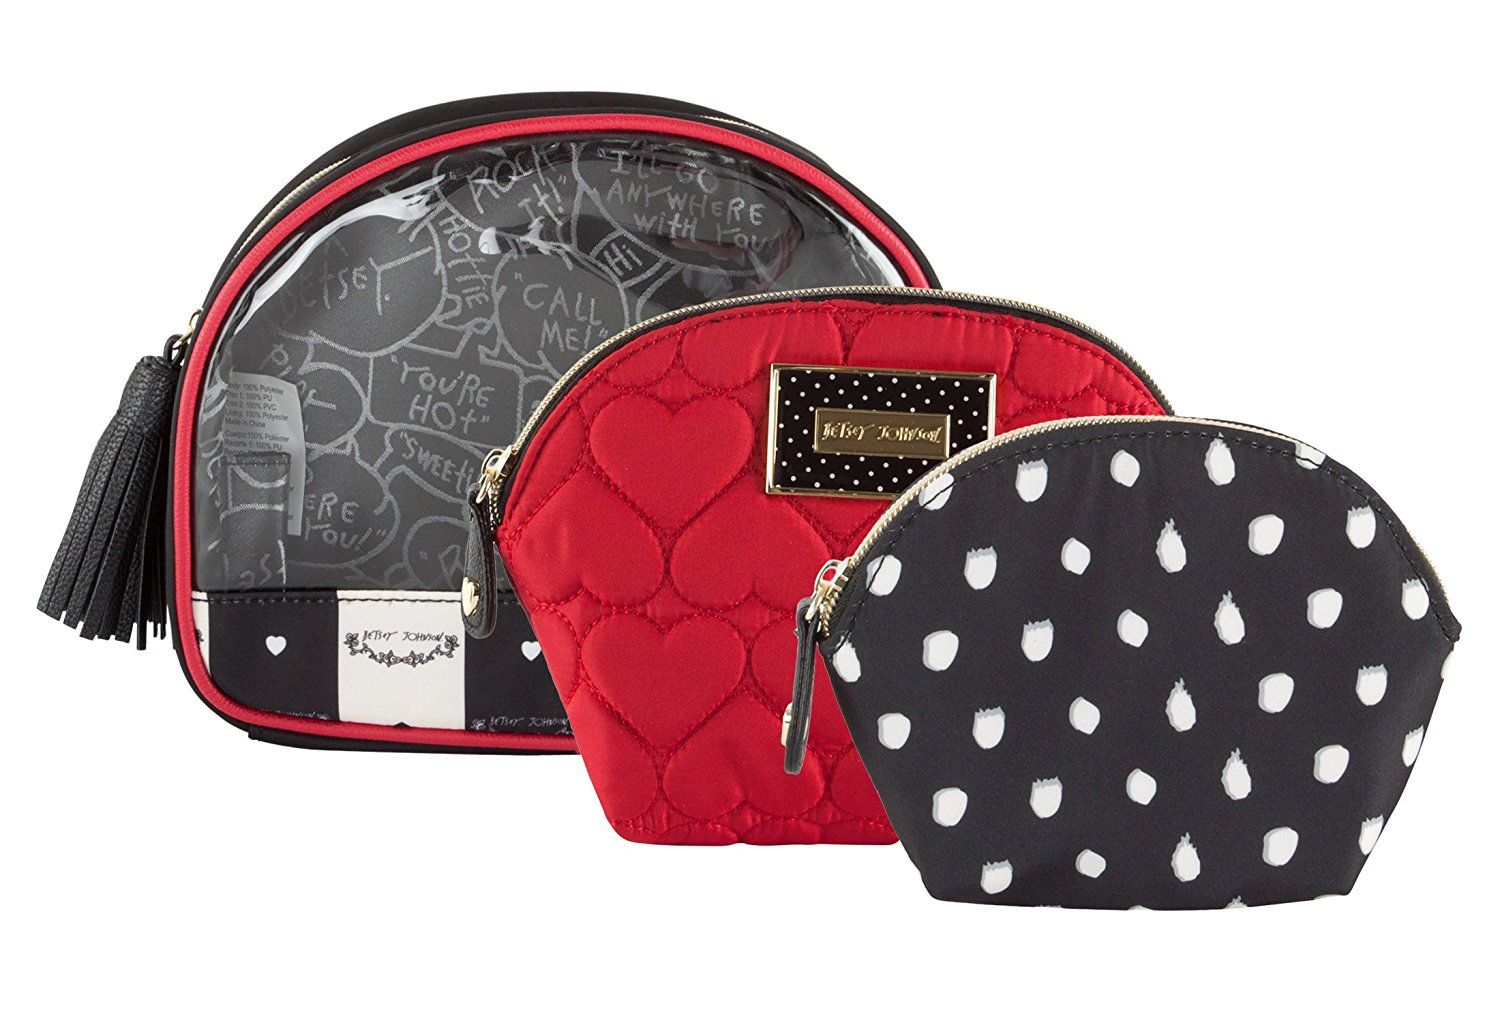 Betsey Johnson Away We Go 3 Piece Cosmetic Bag Want to